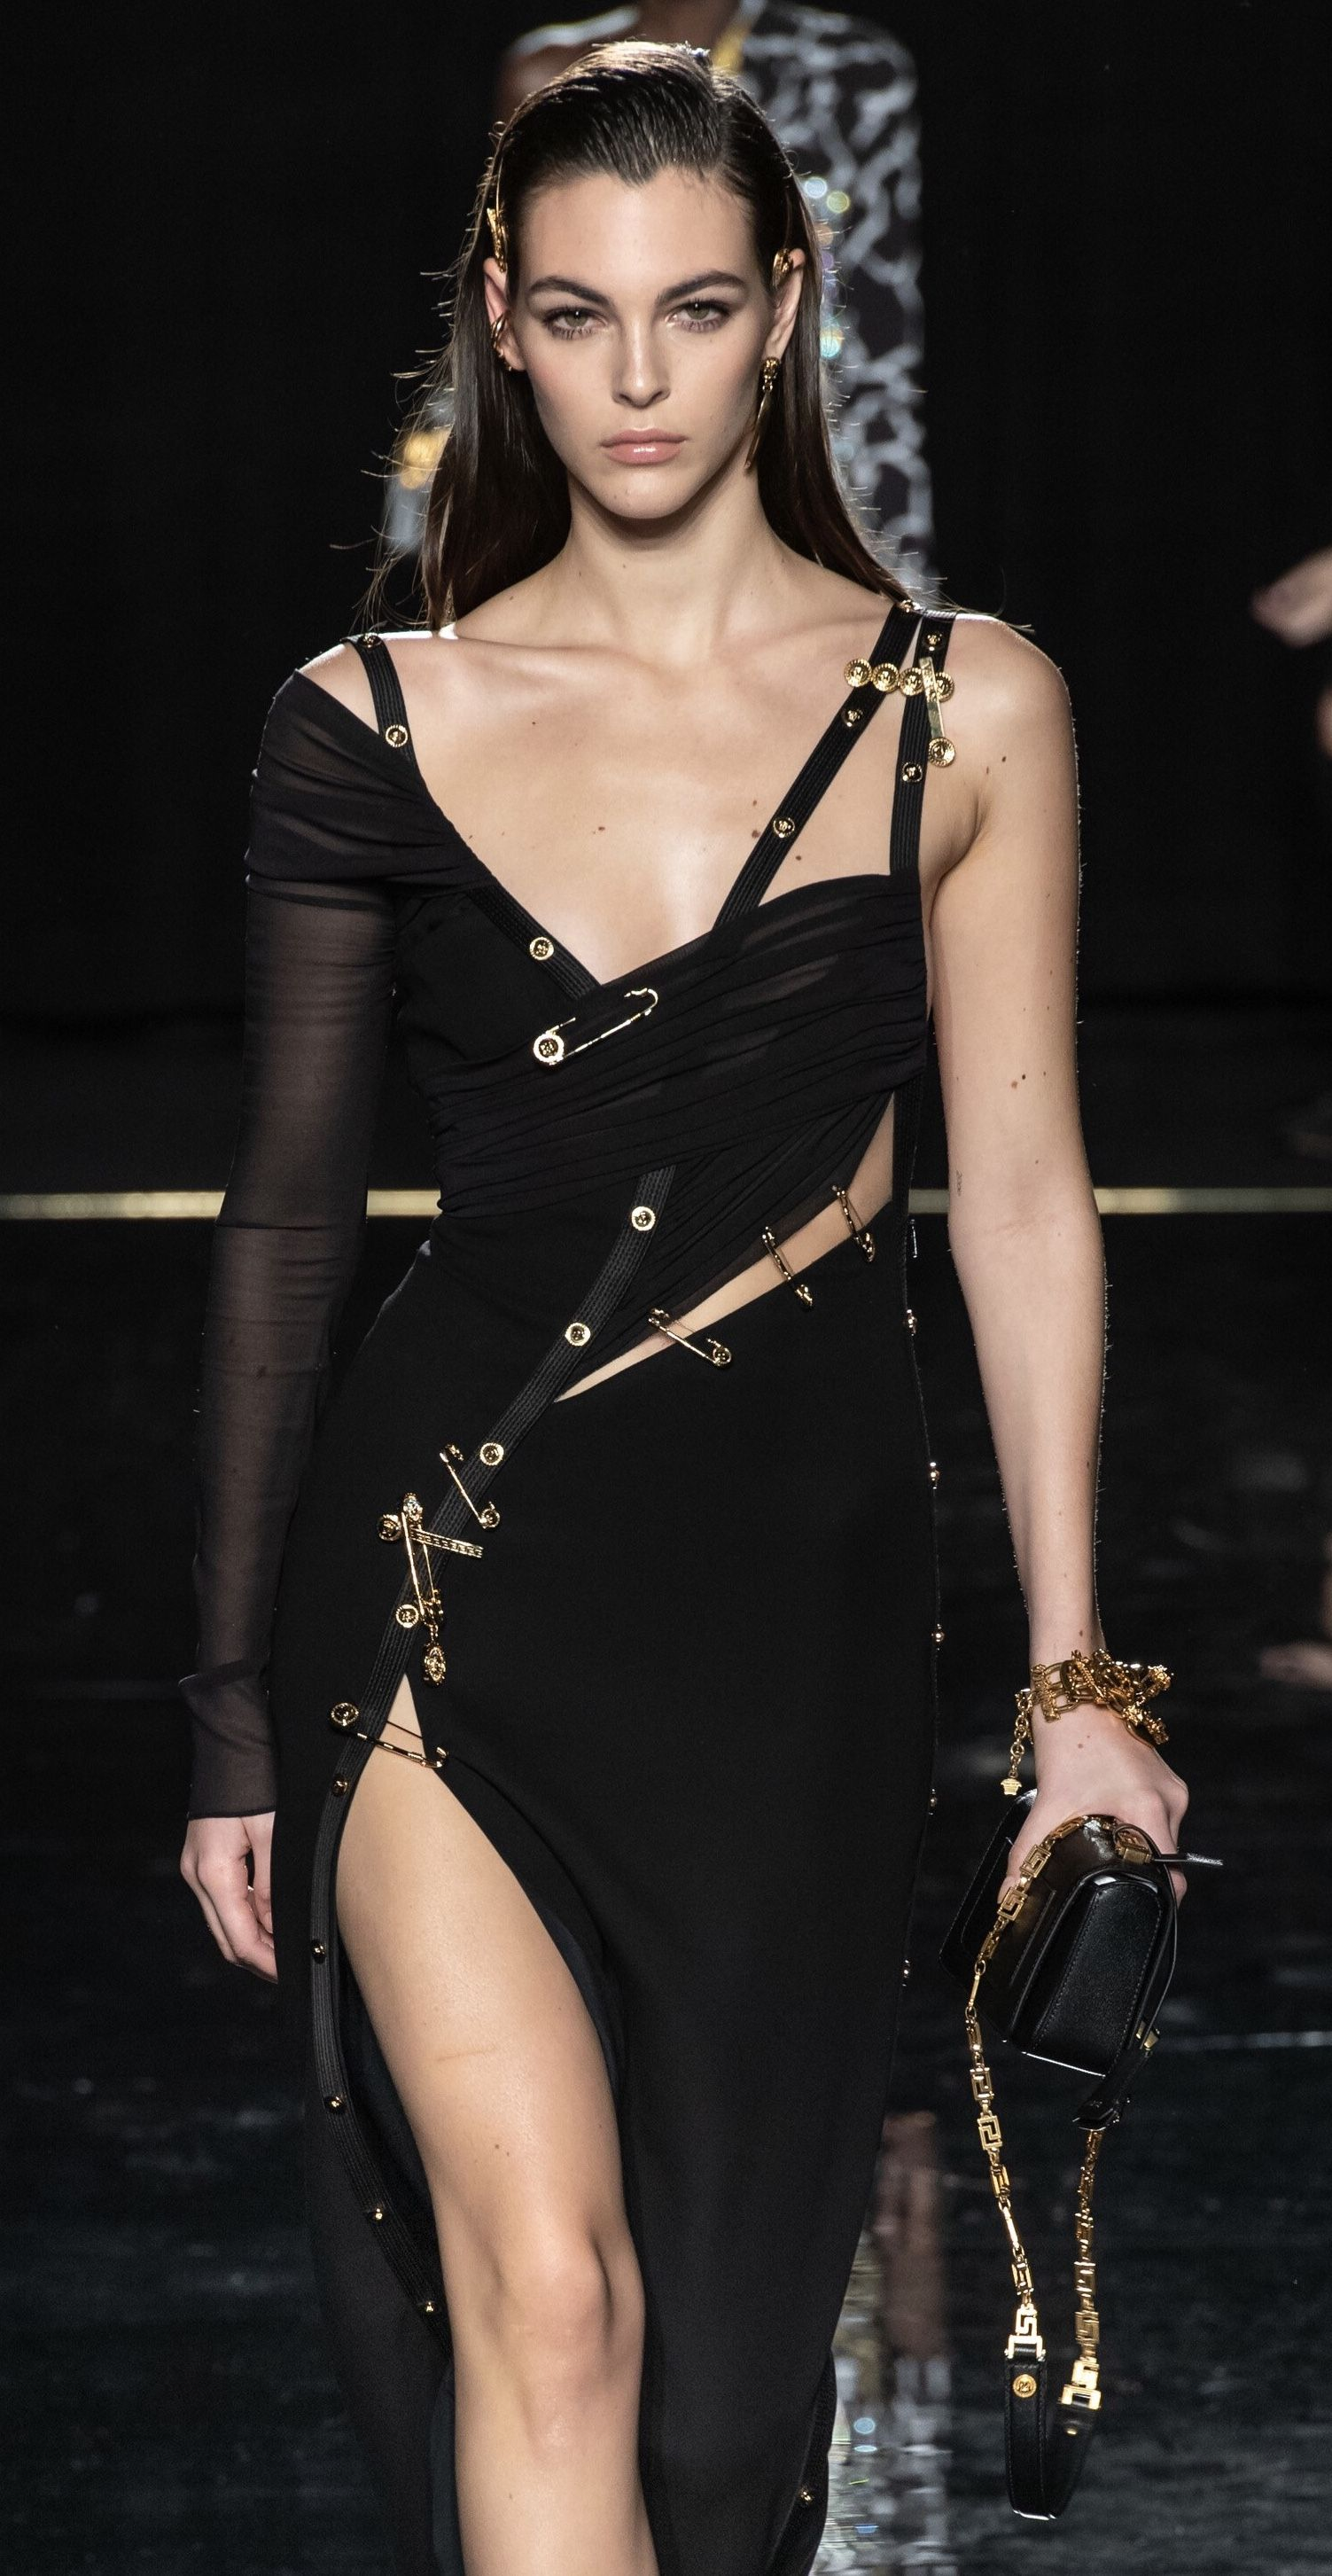 501b0f23209 Versace 2019 tribute to the iconic safety pin dress. Model  Vittoria Ceretti